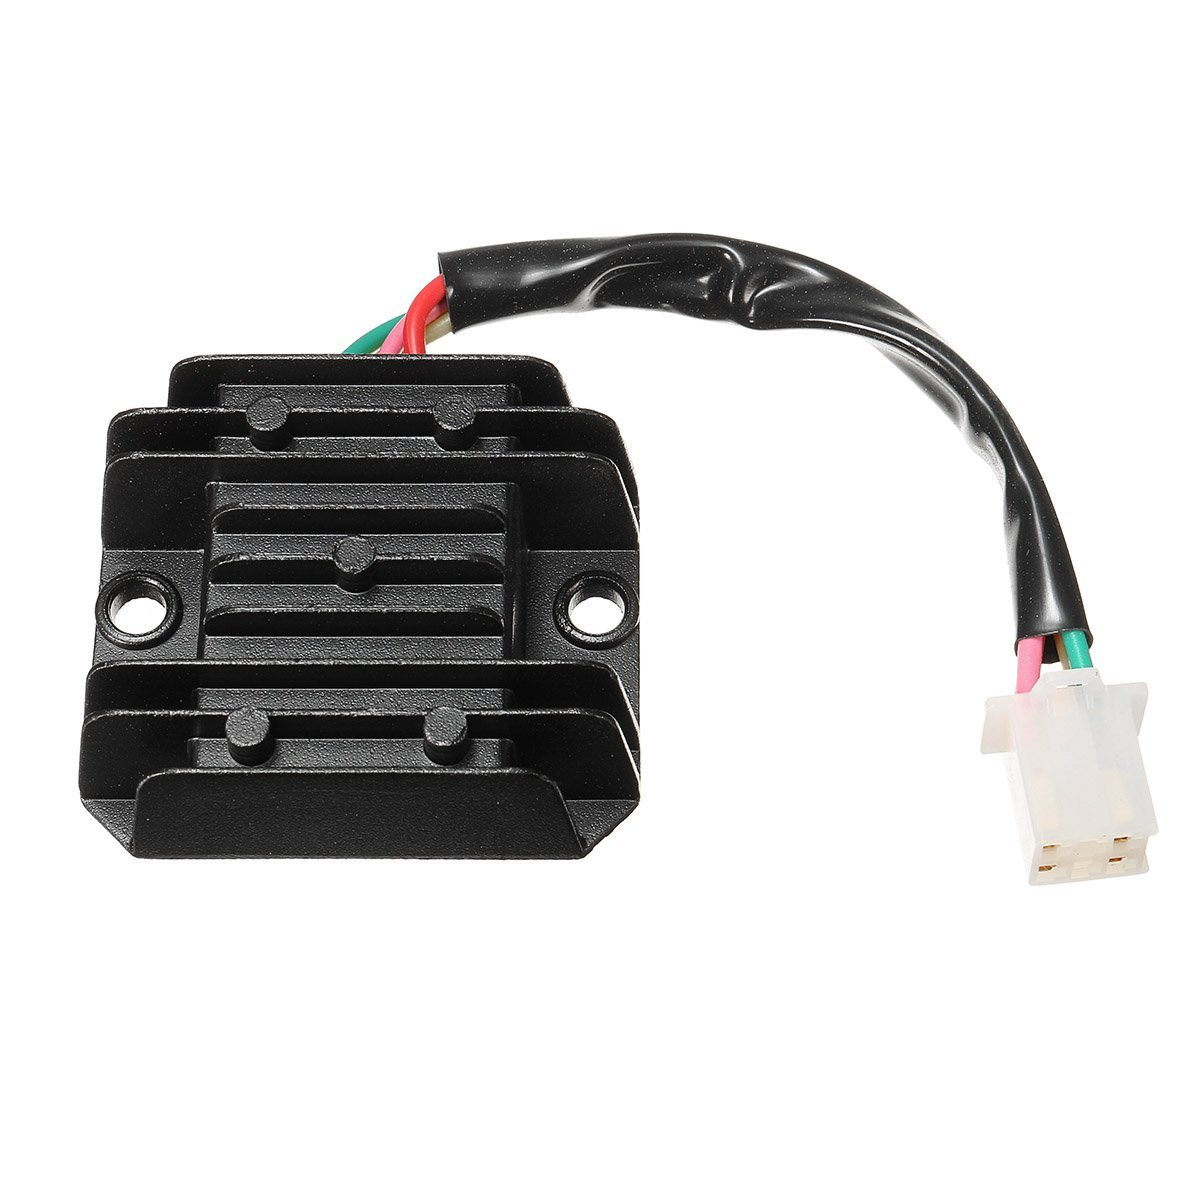 CALAP-STORE - Universal 12V DC Black 4 Wires Regulator Rectifier For Motorcycle/Motorbike /Quad/Scooter